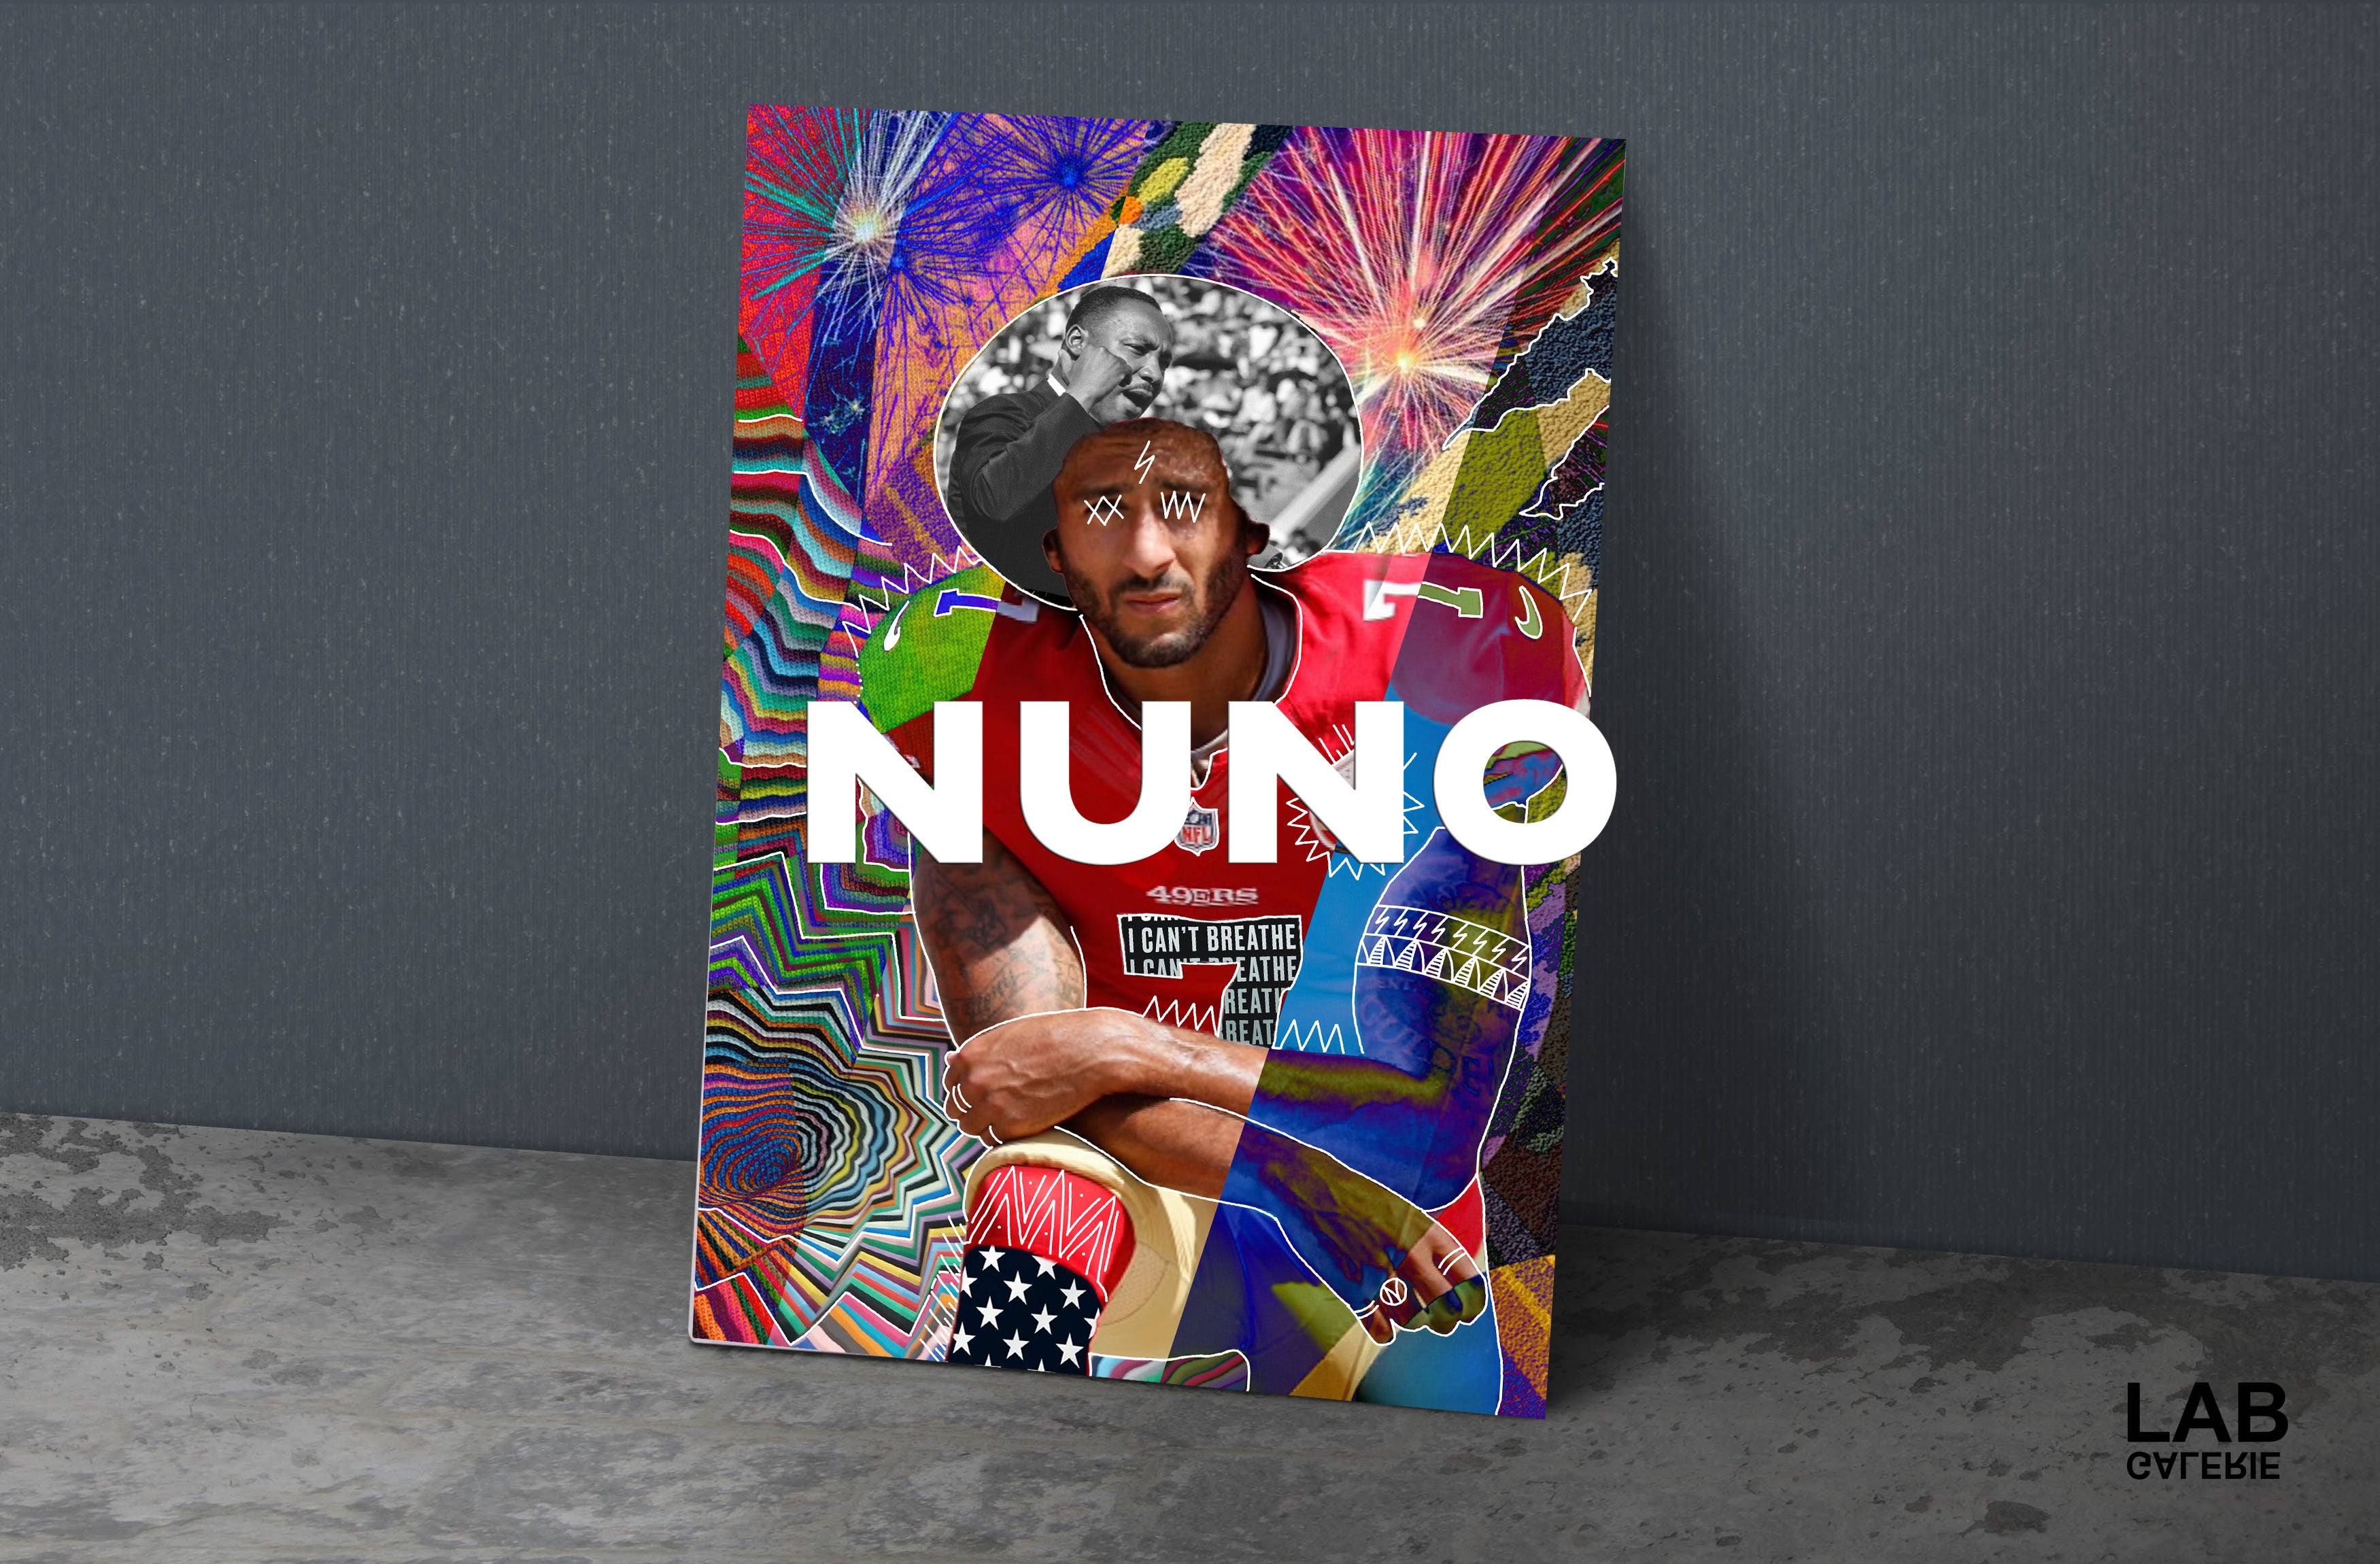 NUNO - ARTIST - ARTISTE - PRINTS - FOR - SALE - INSTAGRAM